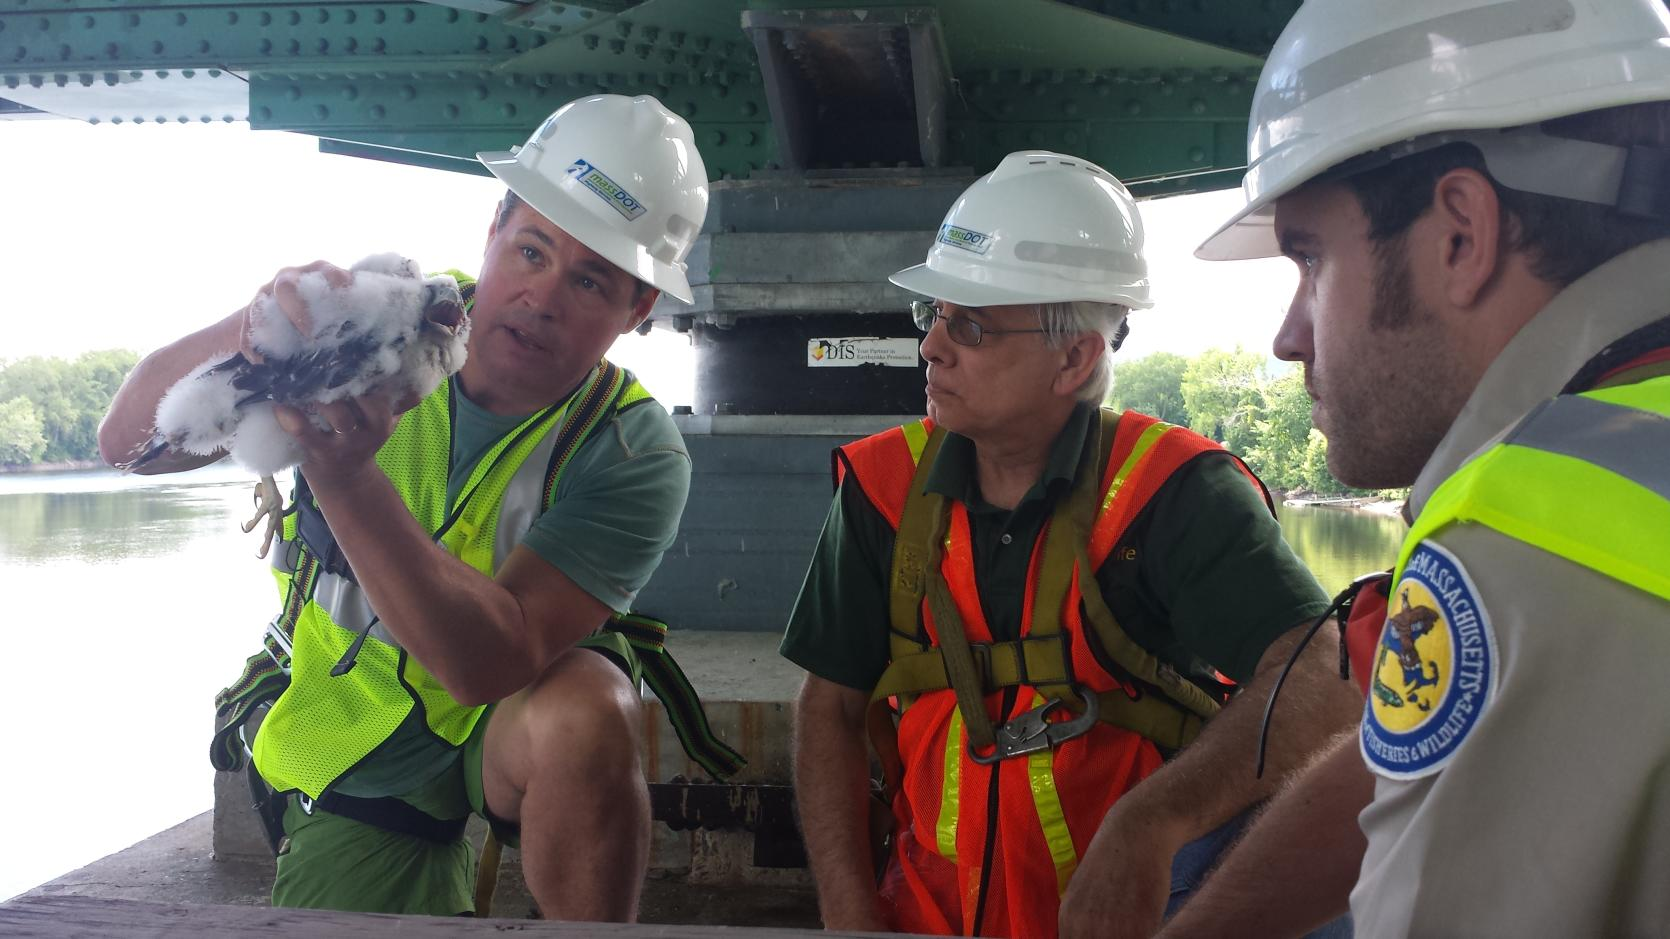 MassWildlife and MassDOT staff with a peregrine falcon chick in the support structure of a bridge.